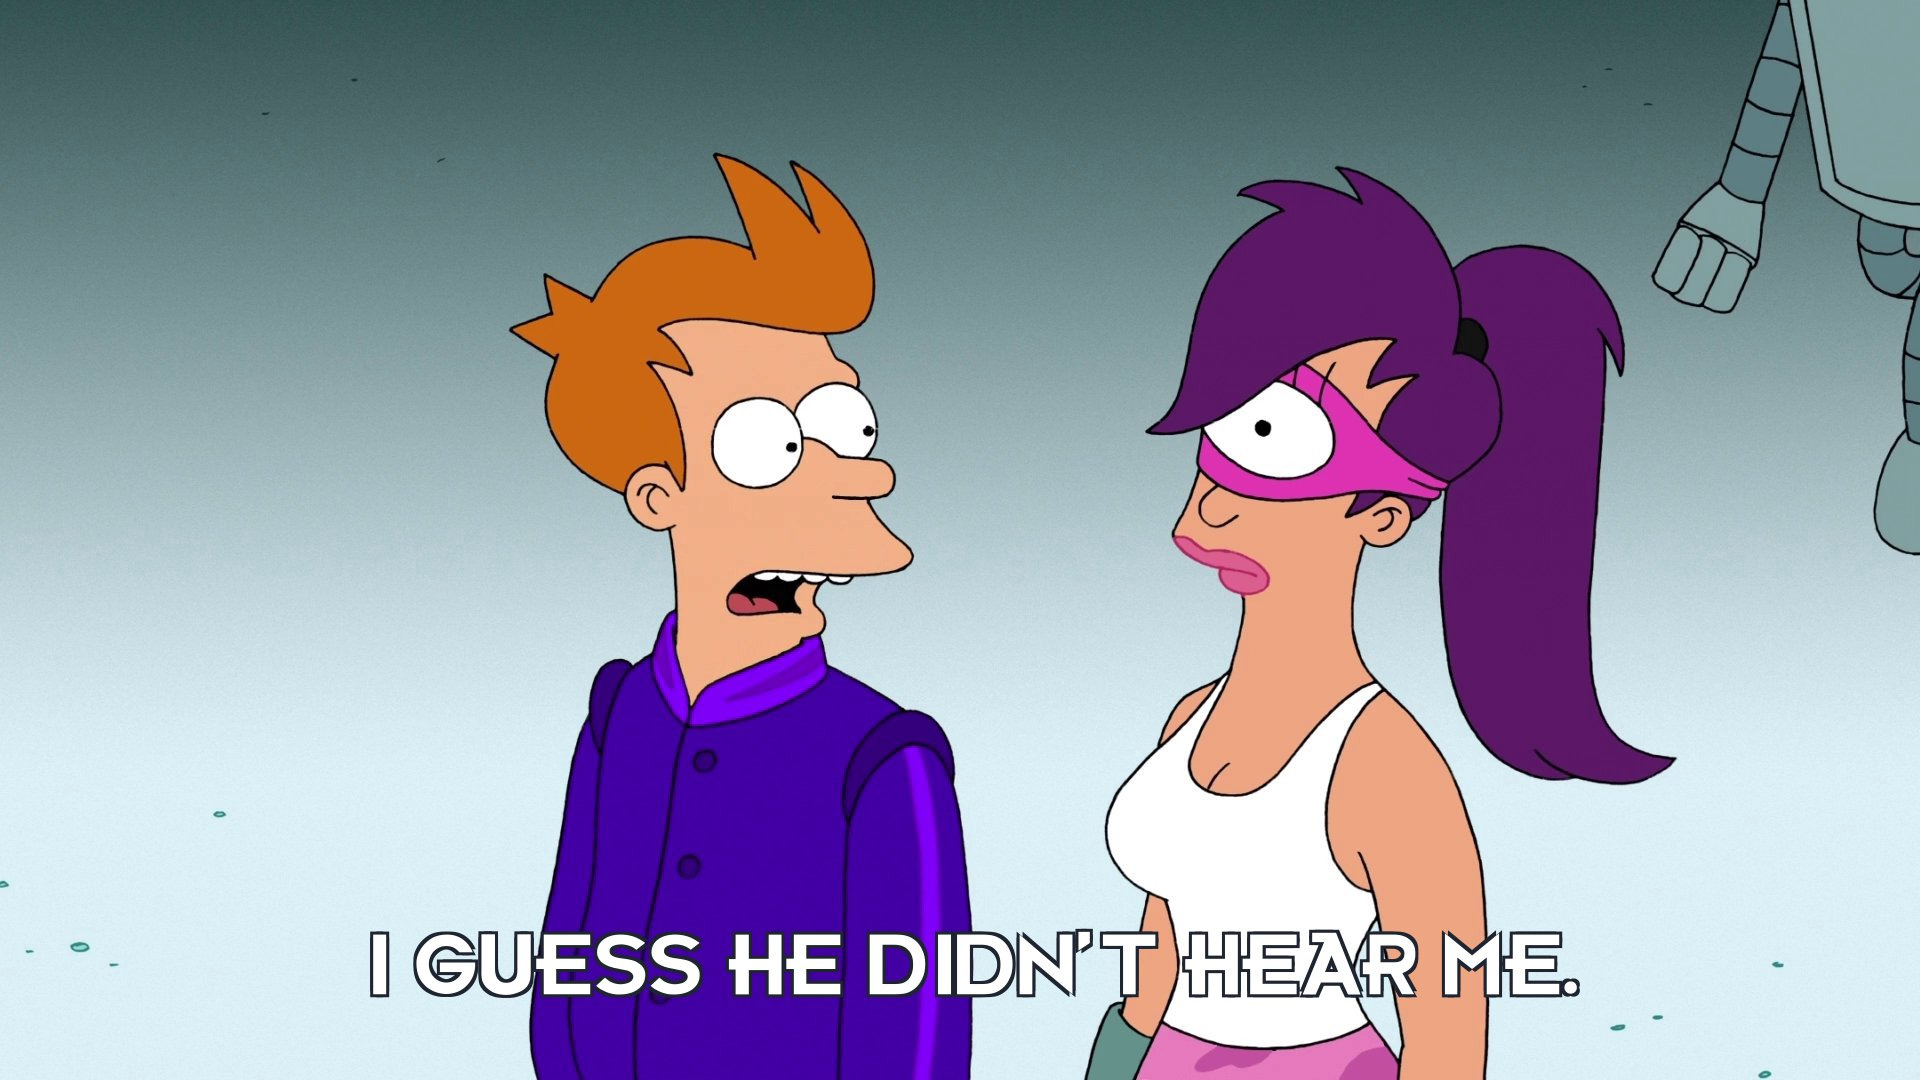 Philip J Fry: I guess he didn't hear me.